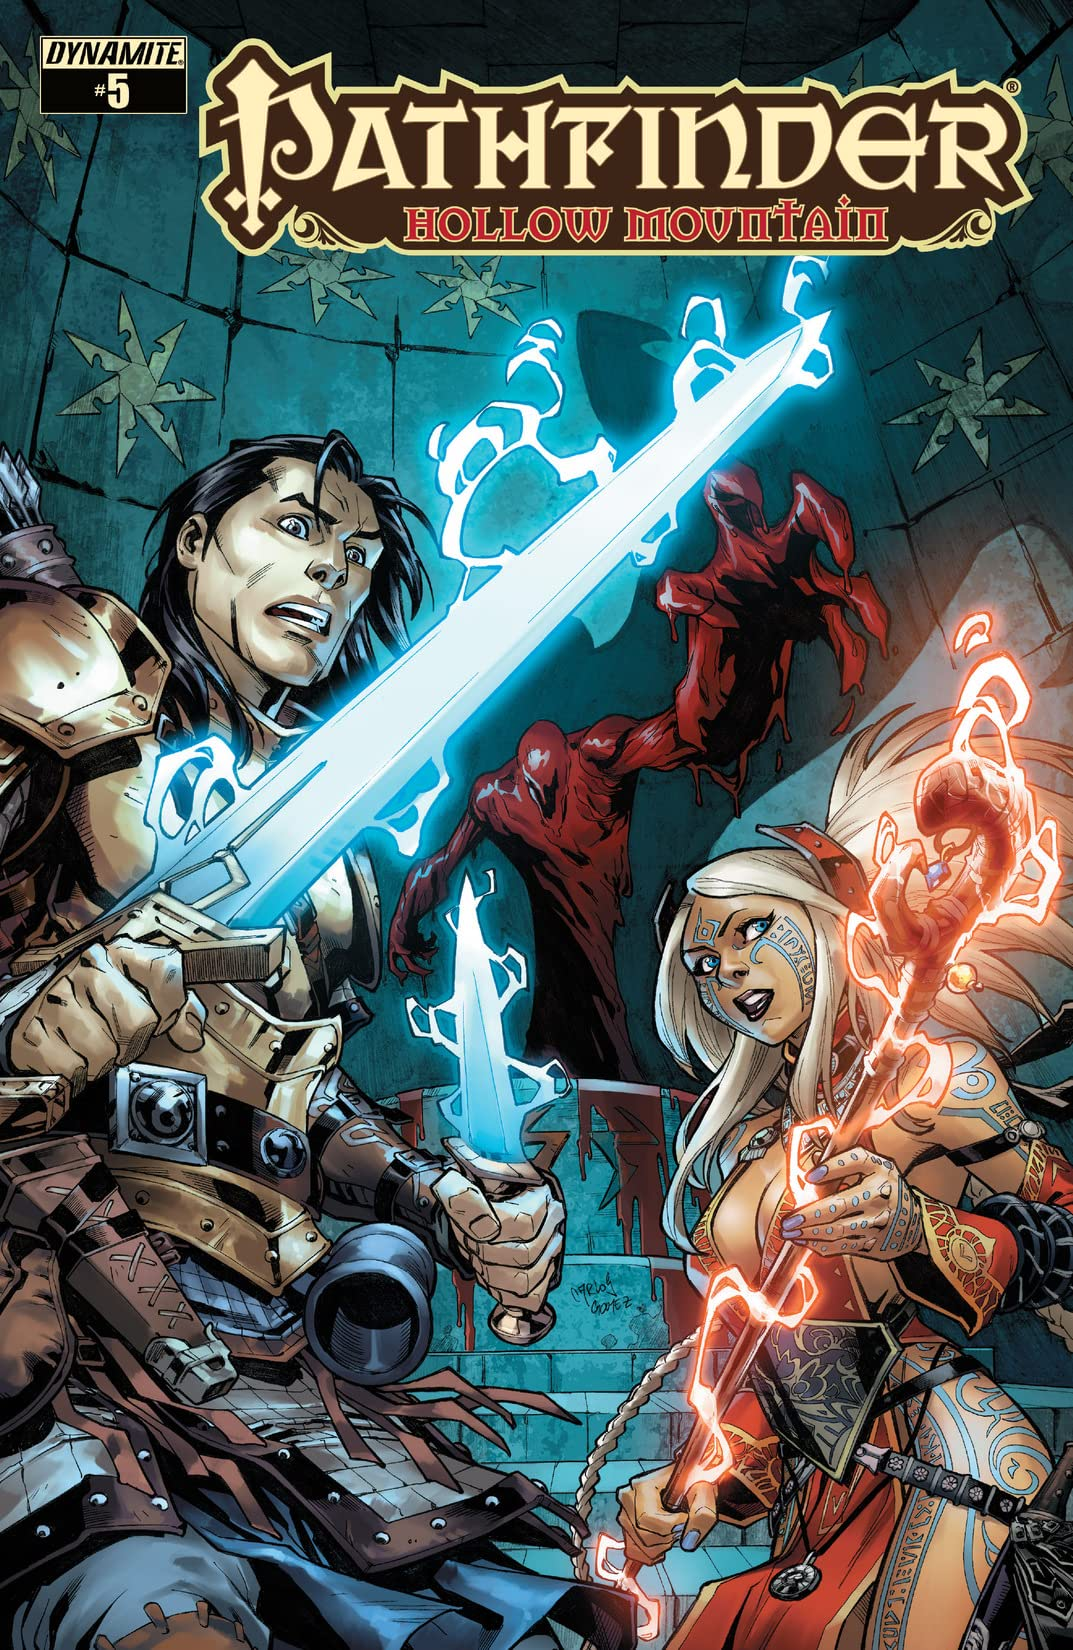 Pathfinder: Hollow Mountain #5: Digital Exclusive Edition